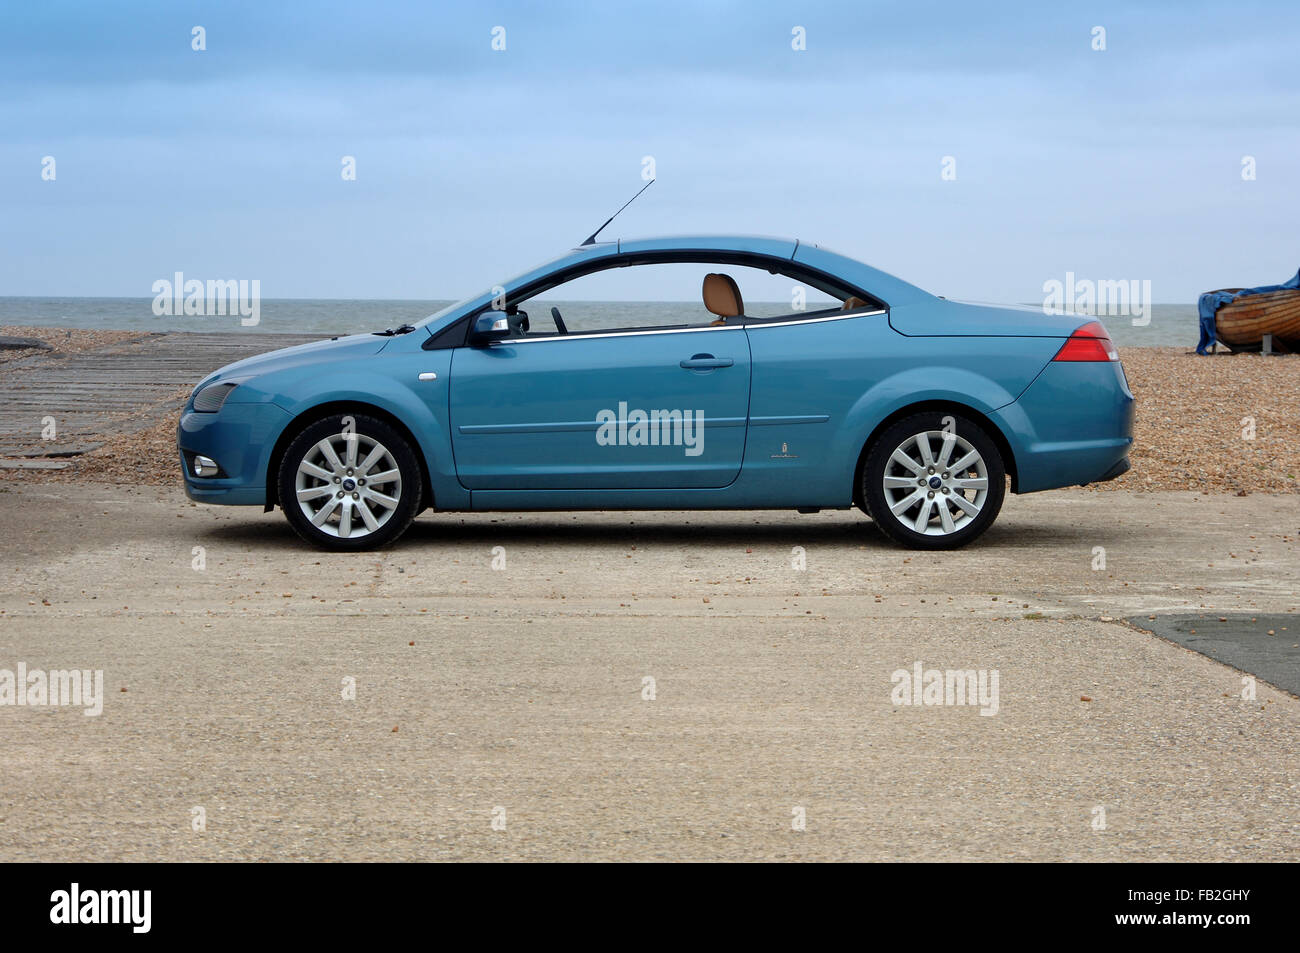 Ford Focus CC (Coupe Convertible) open top car with folding metal roof Stock Photo